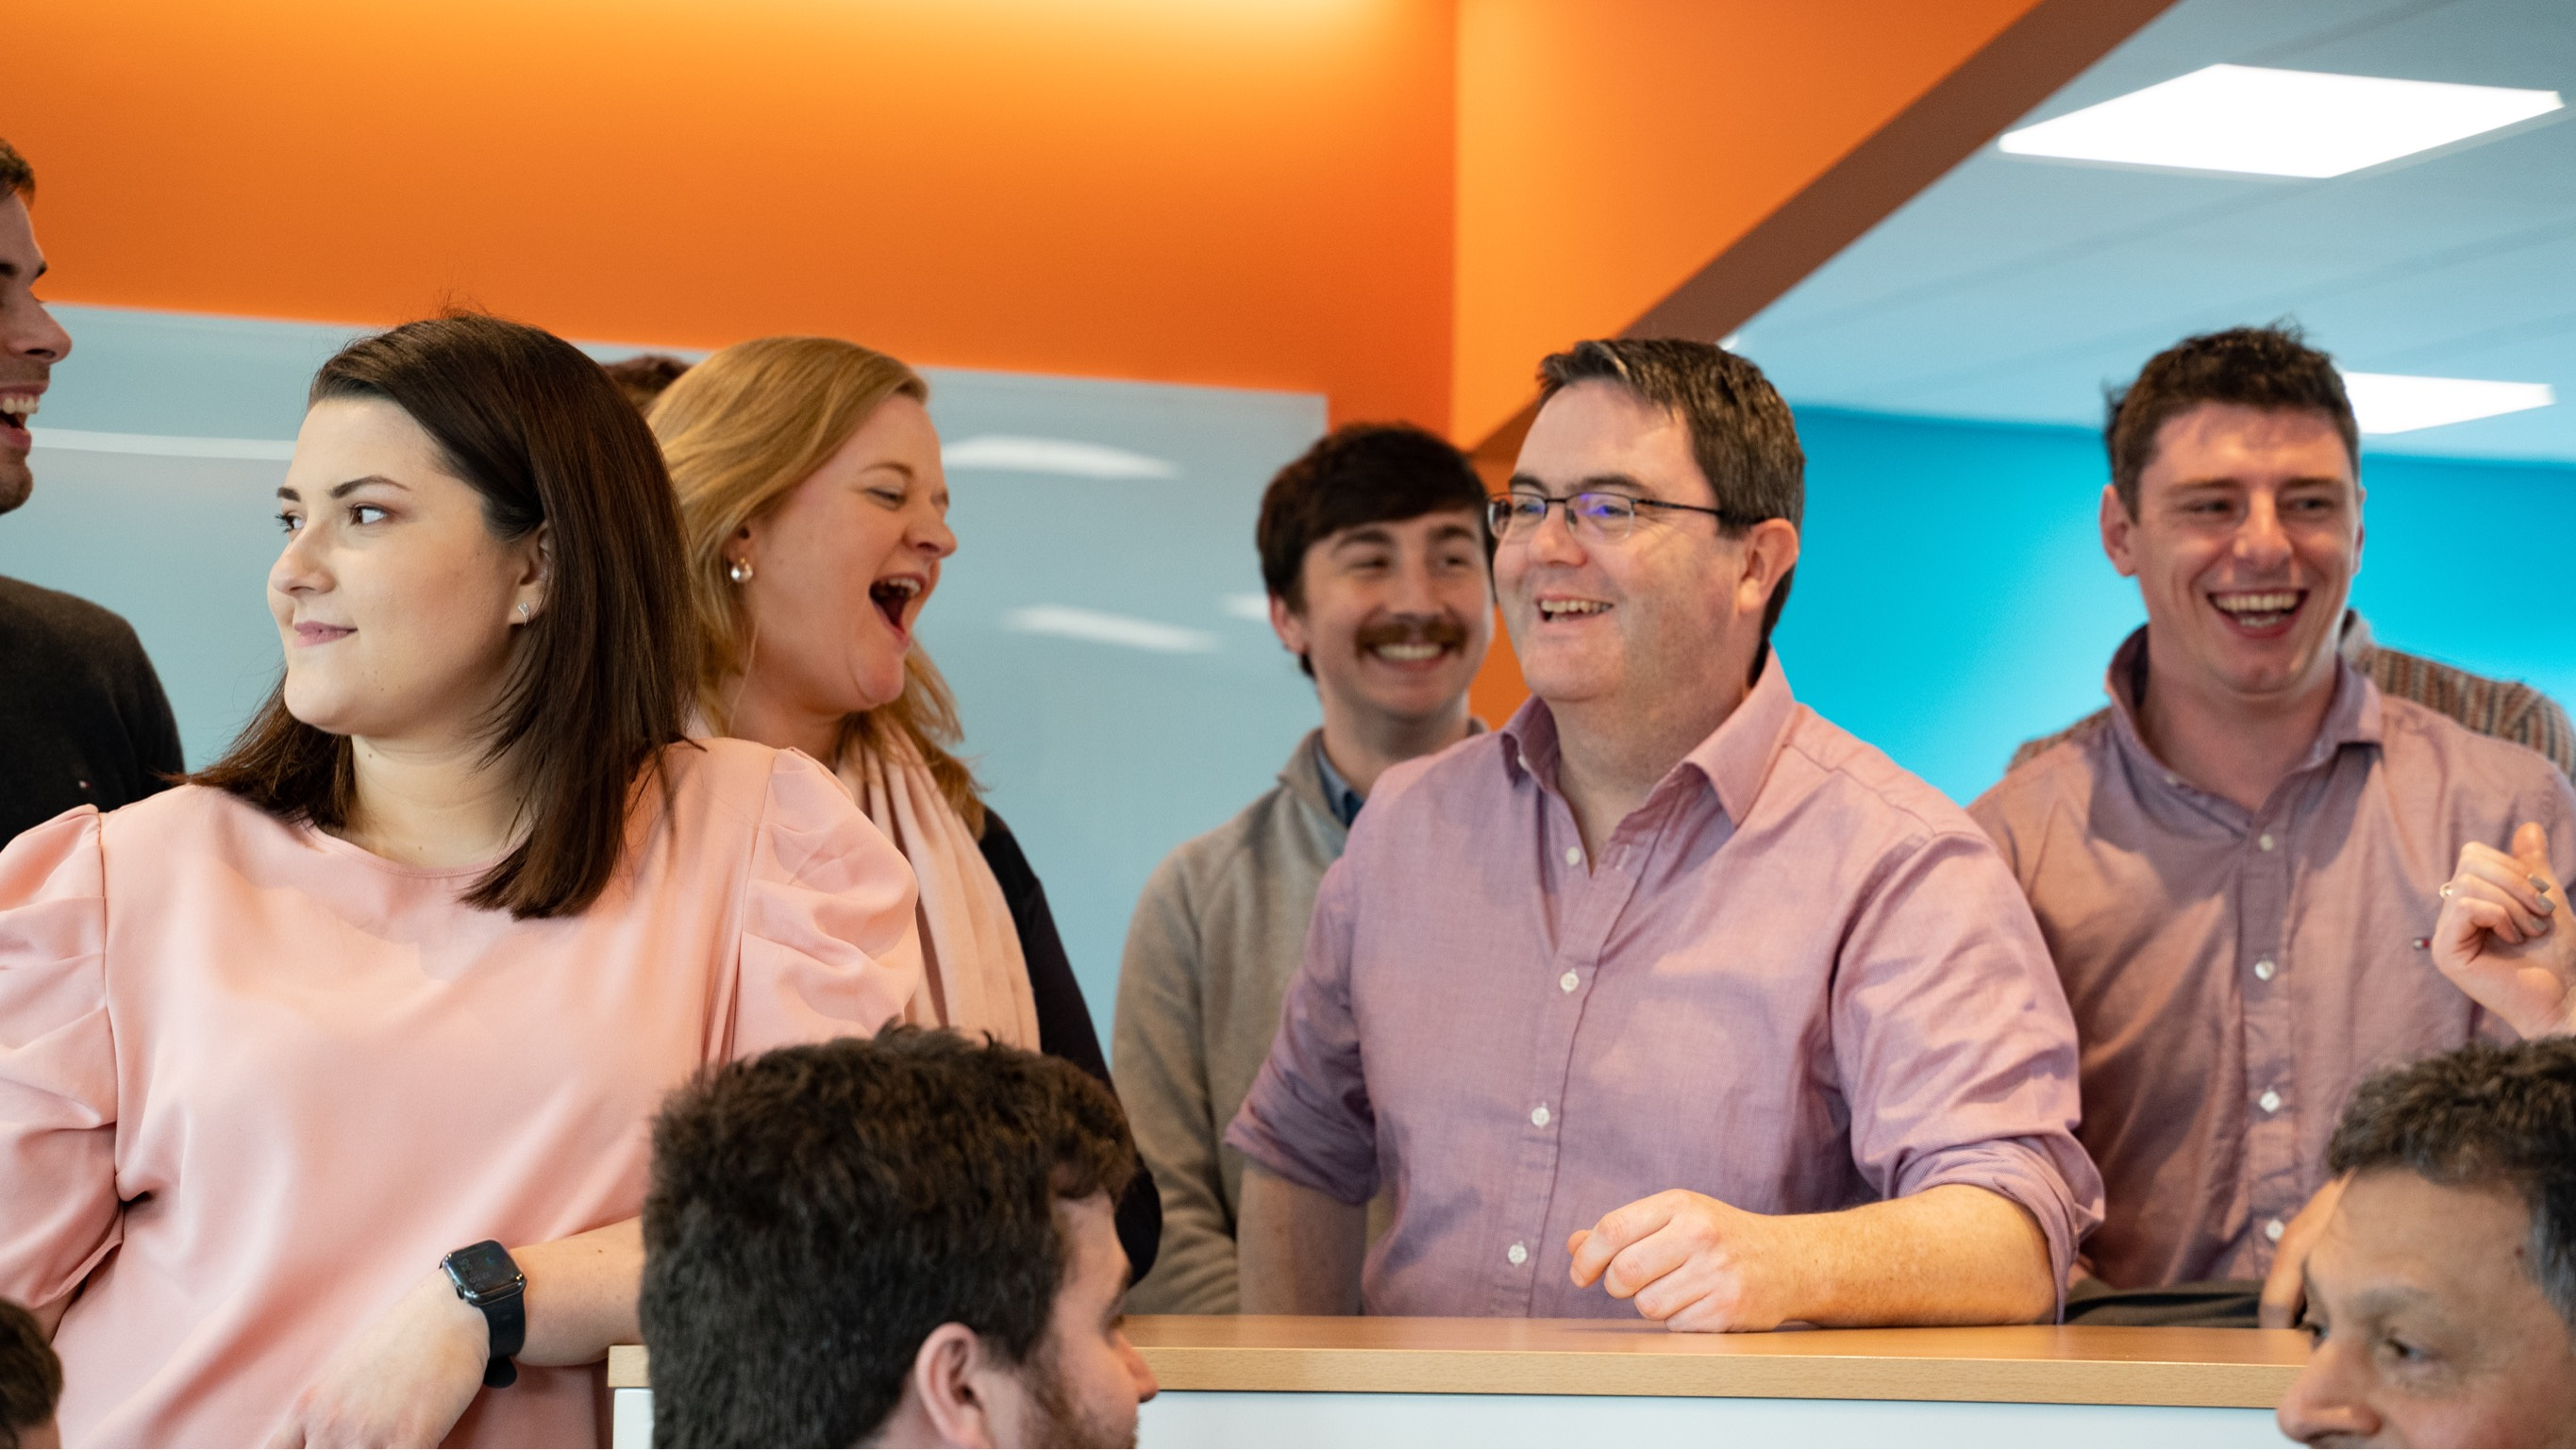 Members of the threefold team grouped together and they are smiling after Mike told a joke.